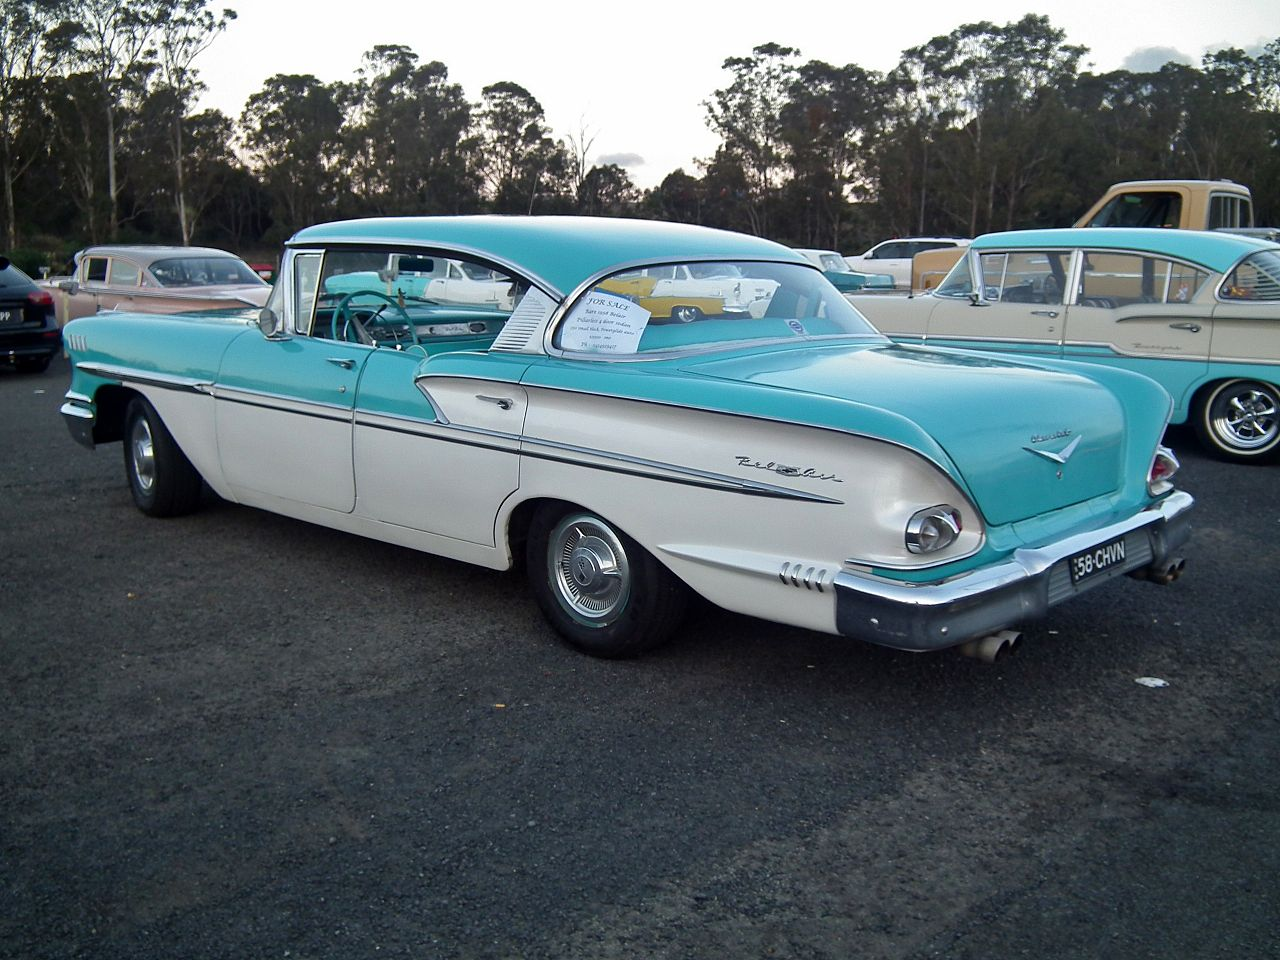 1958_Chevrolet_Bel_Air_hardtop_sedan_(15607617182).jpg